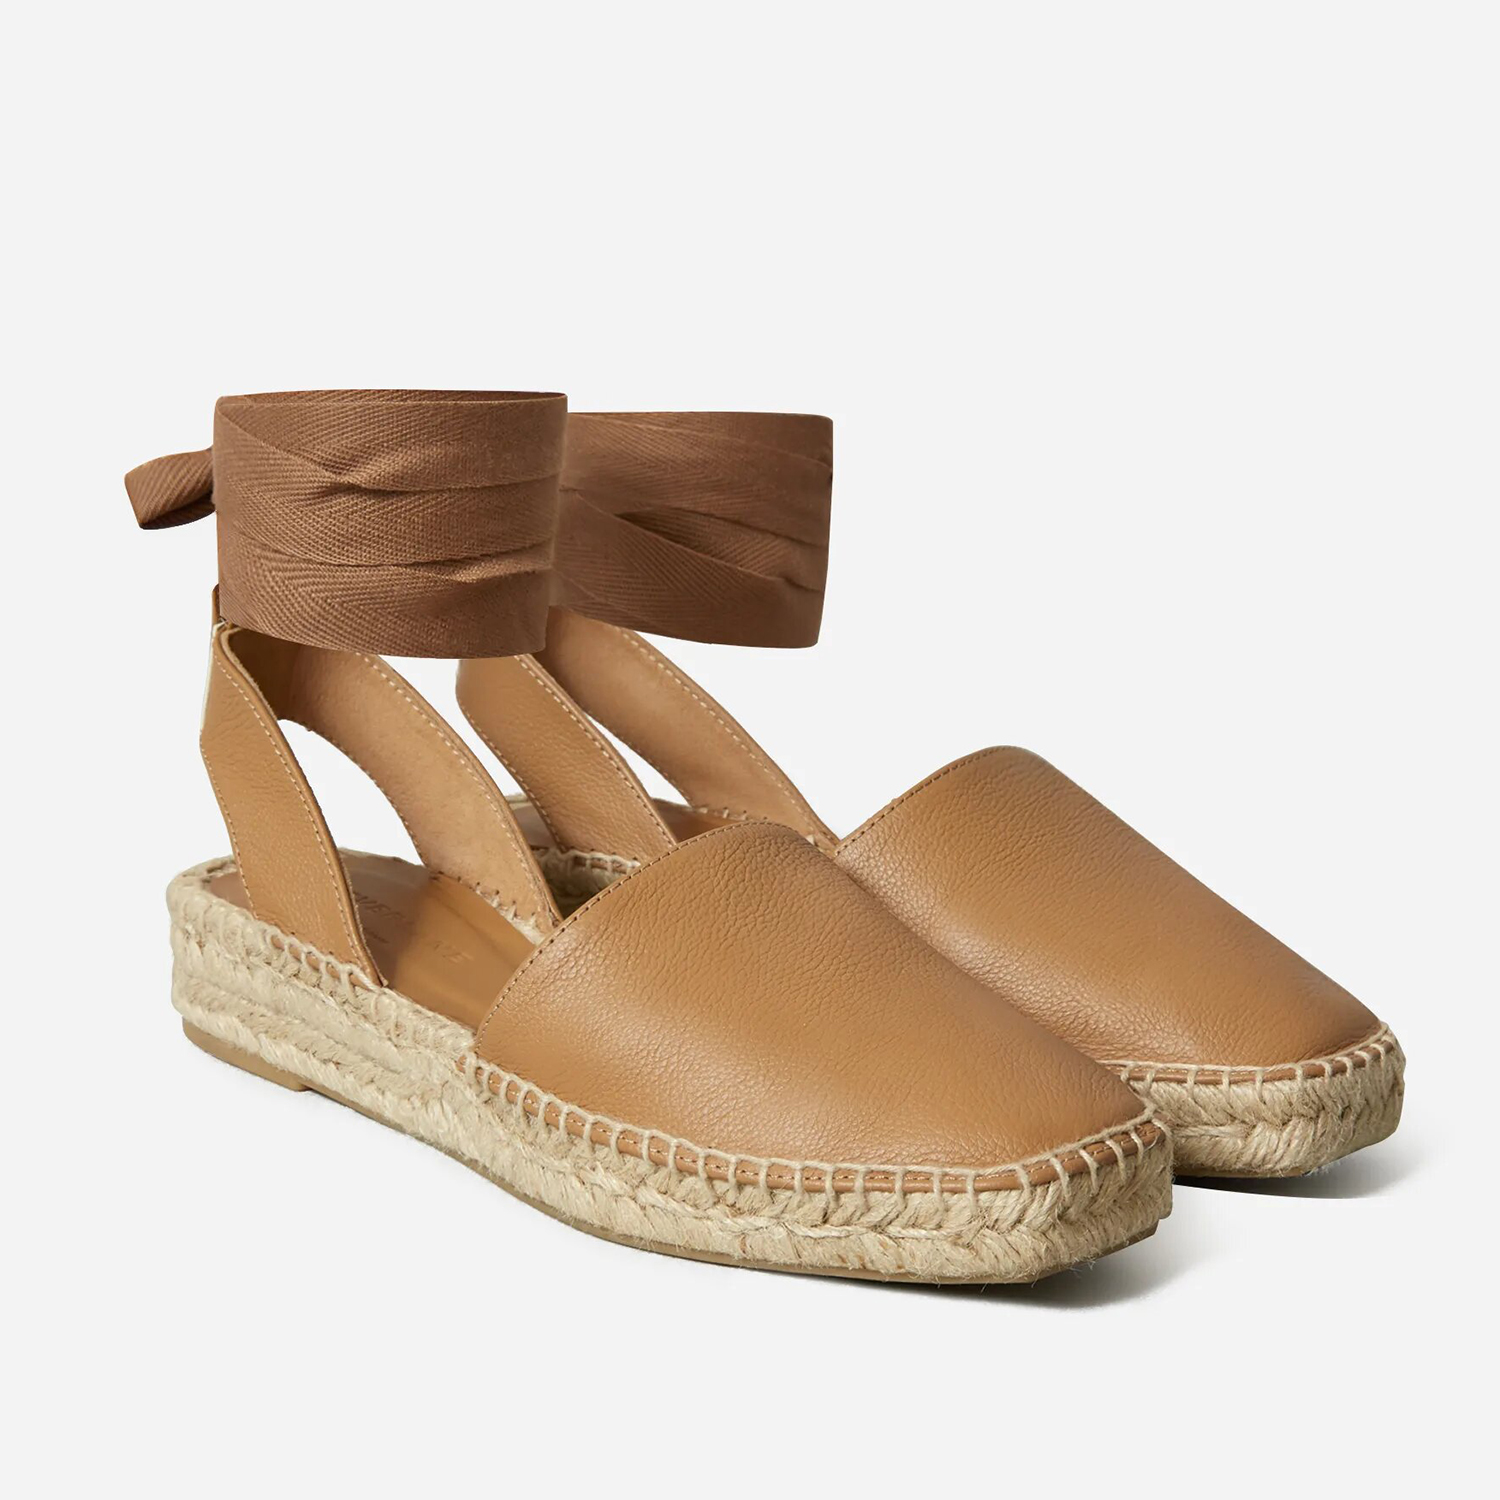 The D'orsay Espadrille